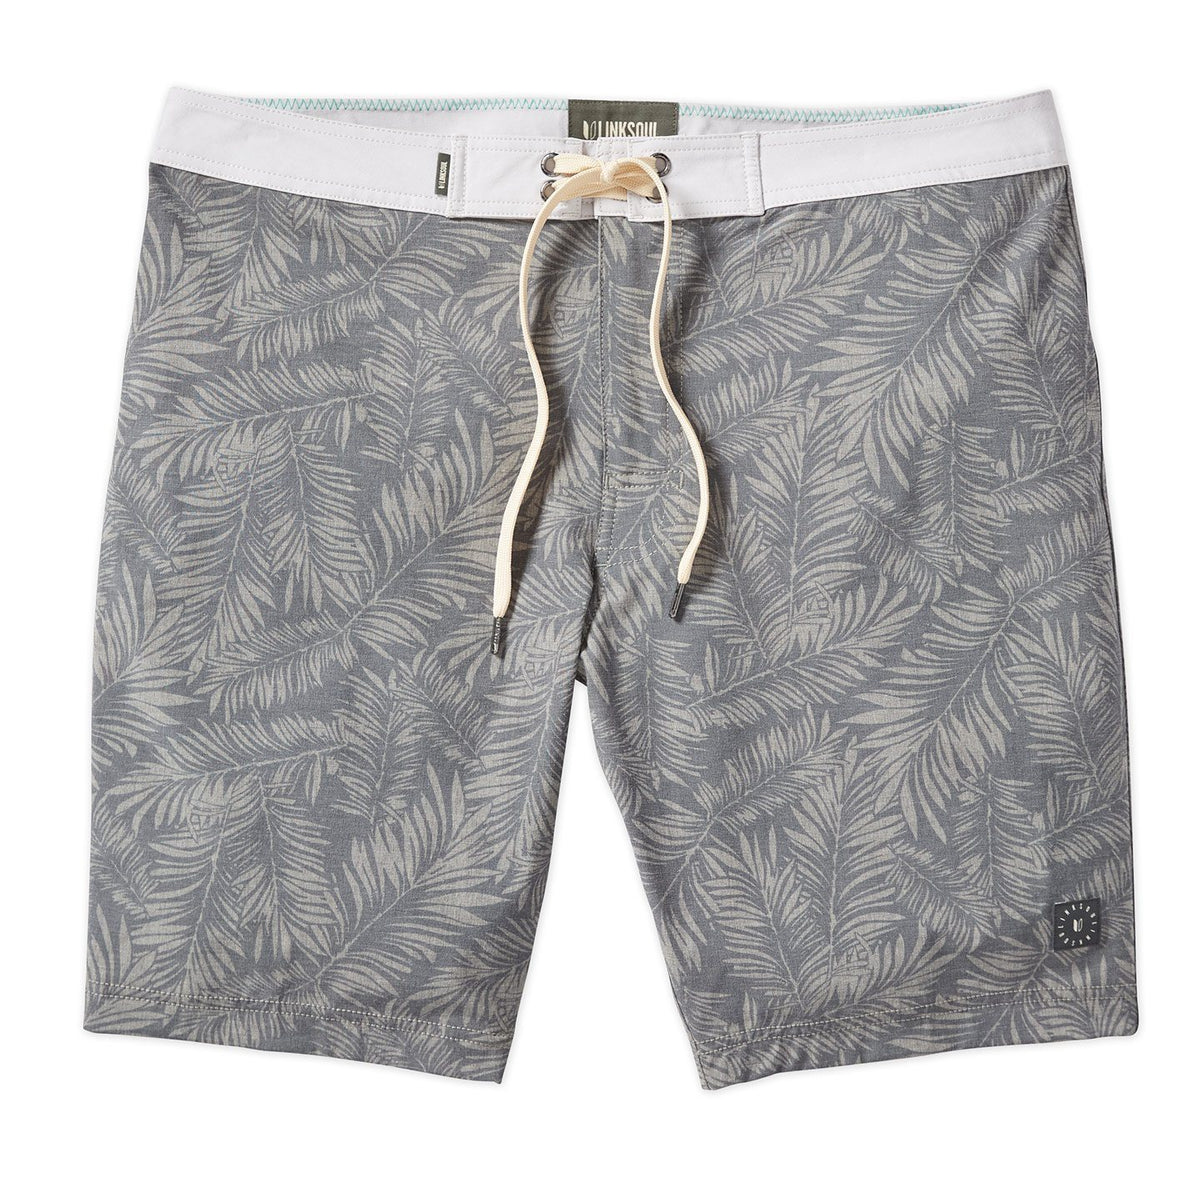 Palm Print Boardwalker Boardshort